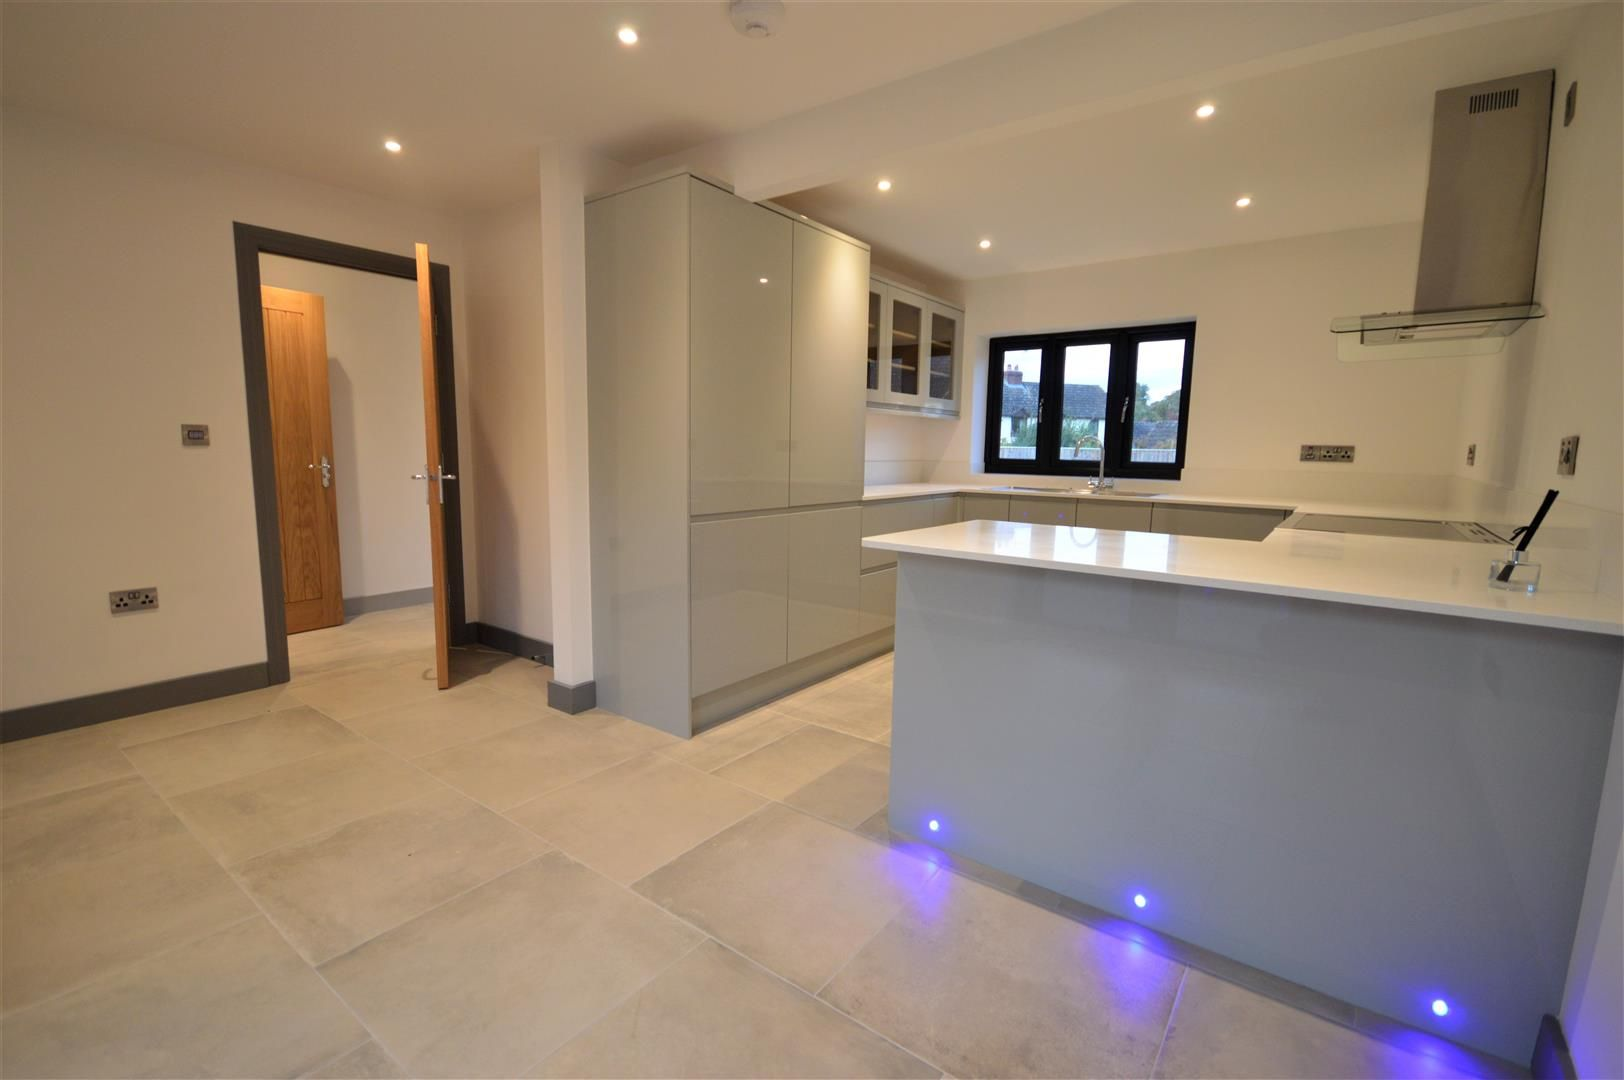 4 bed detached for sale in Brimfield 5